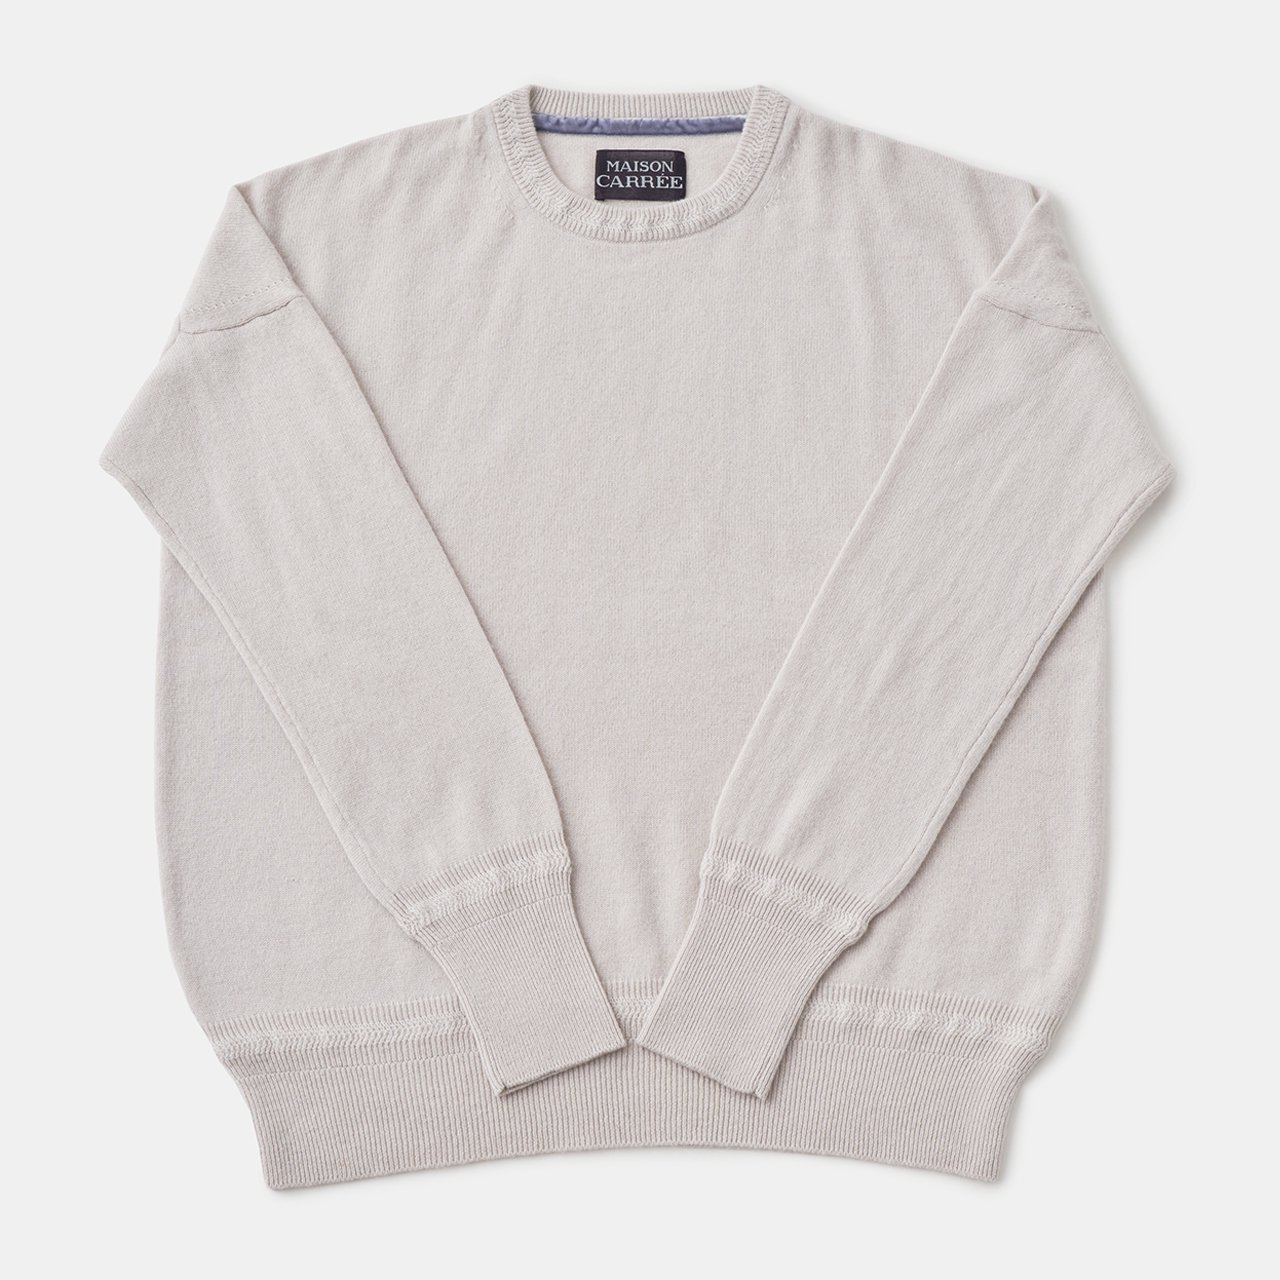 CASHMERE Basic Tops<BR>PALE JUTE